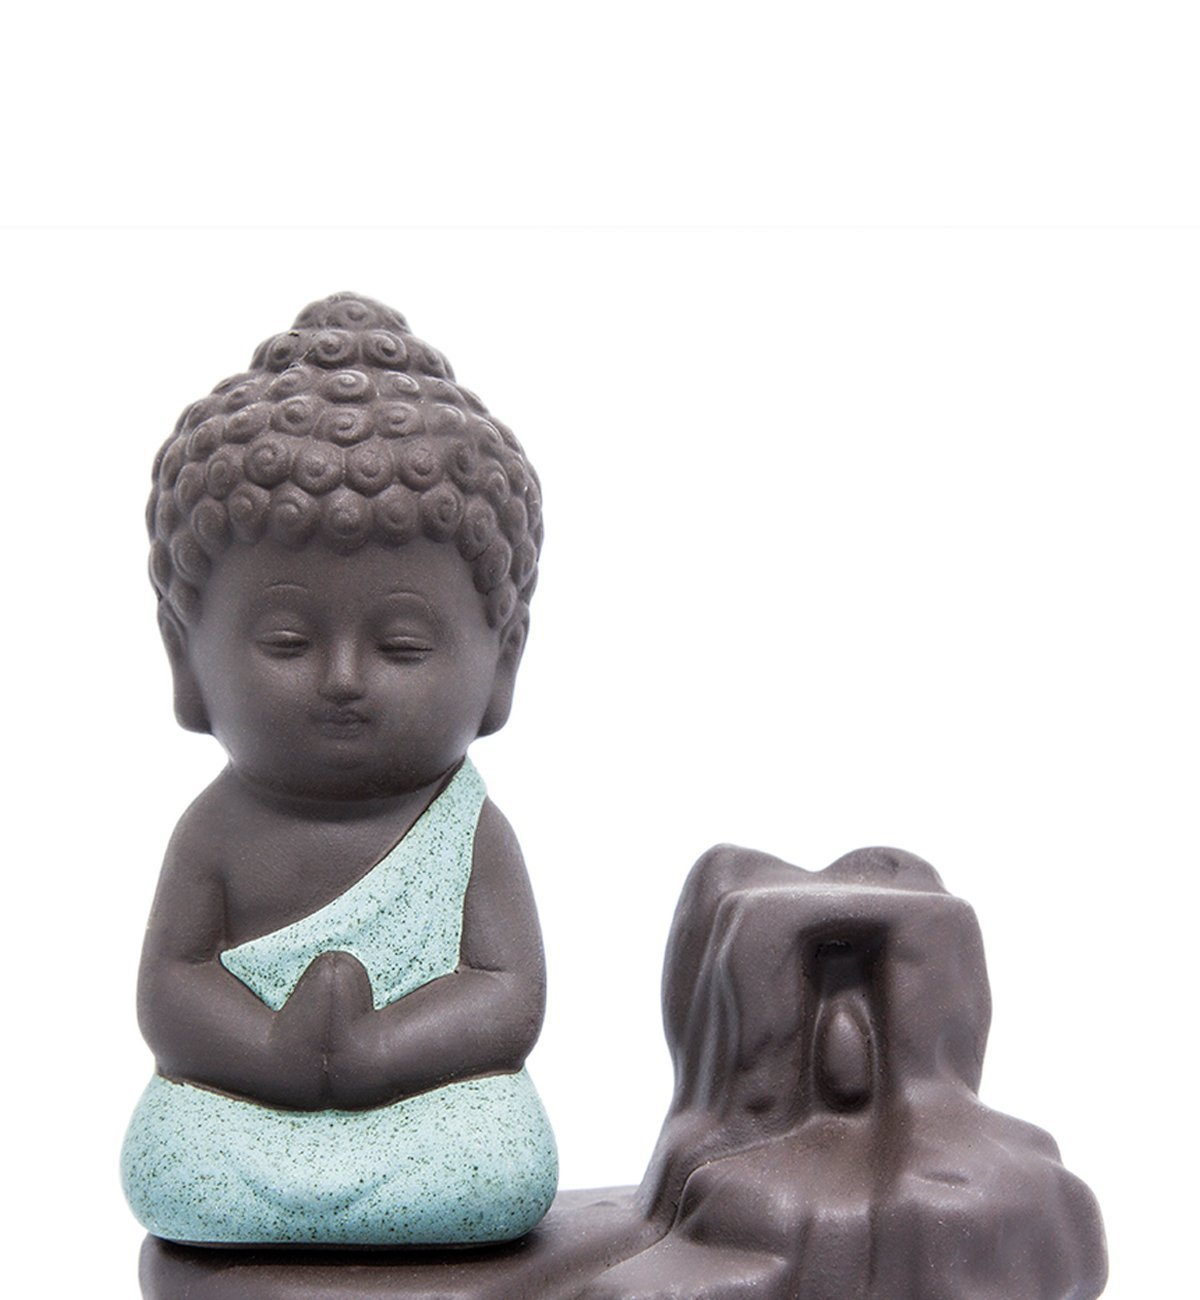 IN-001Green The Little Monk Waterfall Backflow Homemade Buddha Incense Burner Tower Cones Sticks Holder Ash Catcher